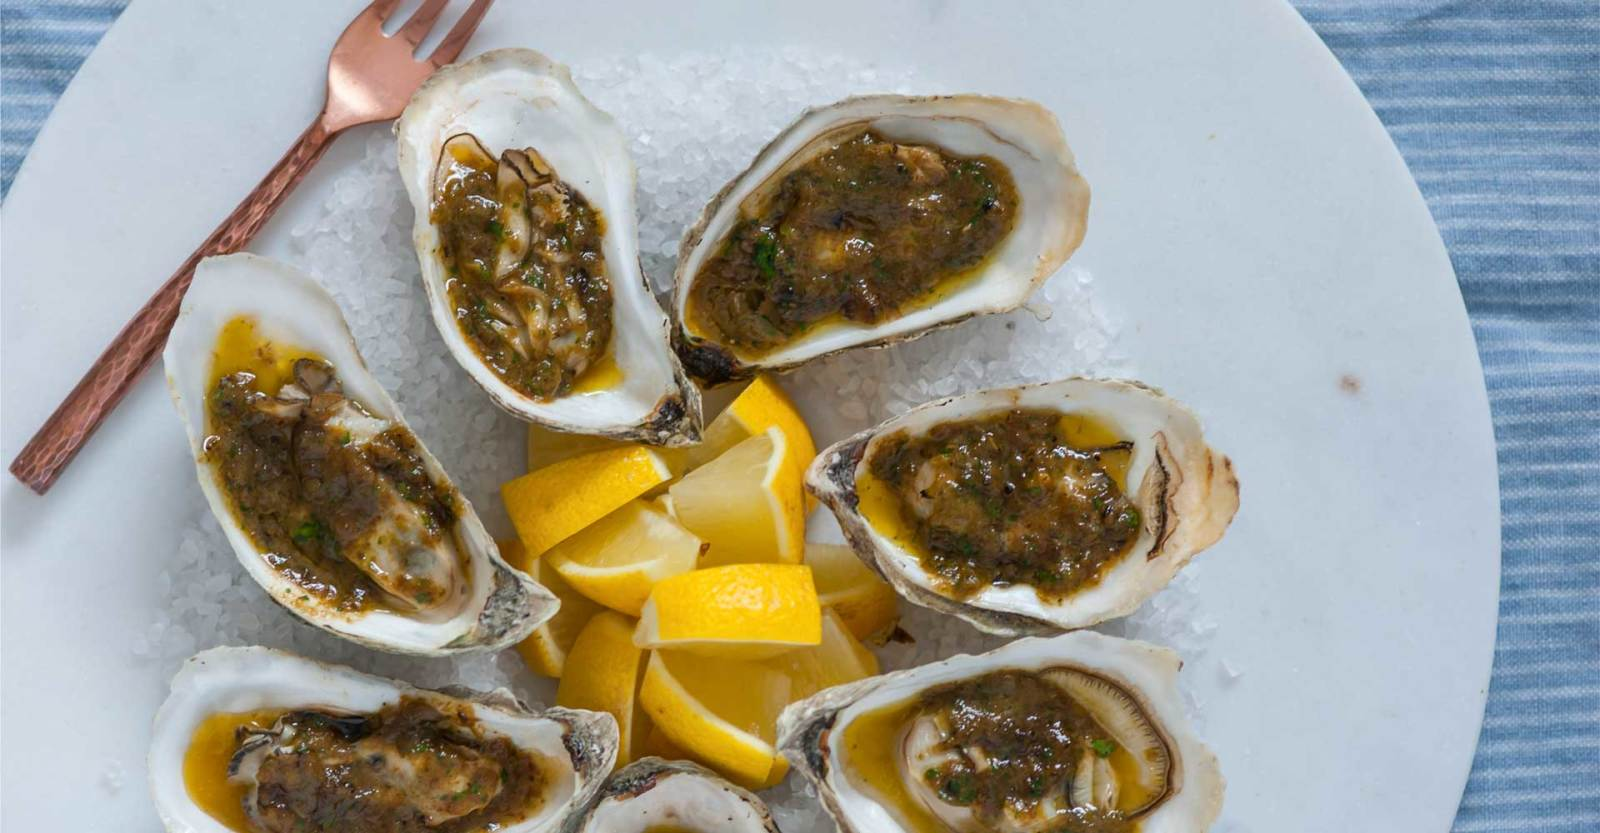 Grilled Oysters with Green Chile Butter Recipe | Craft Beer & Brewing